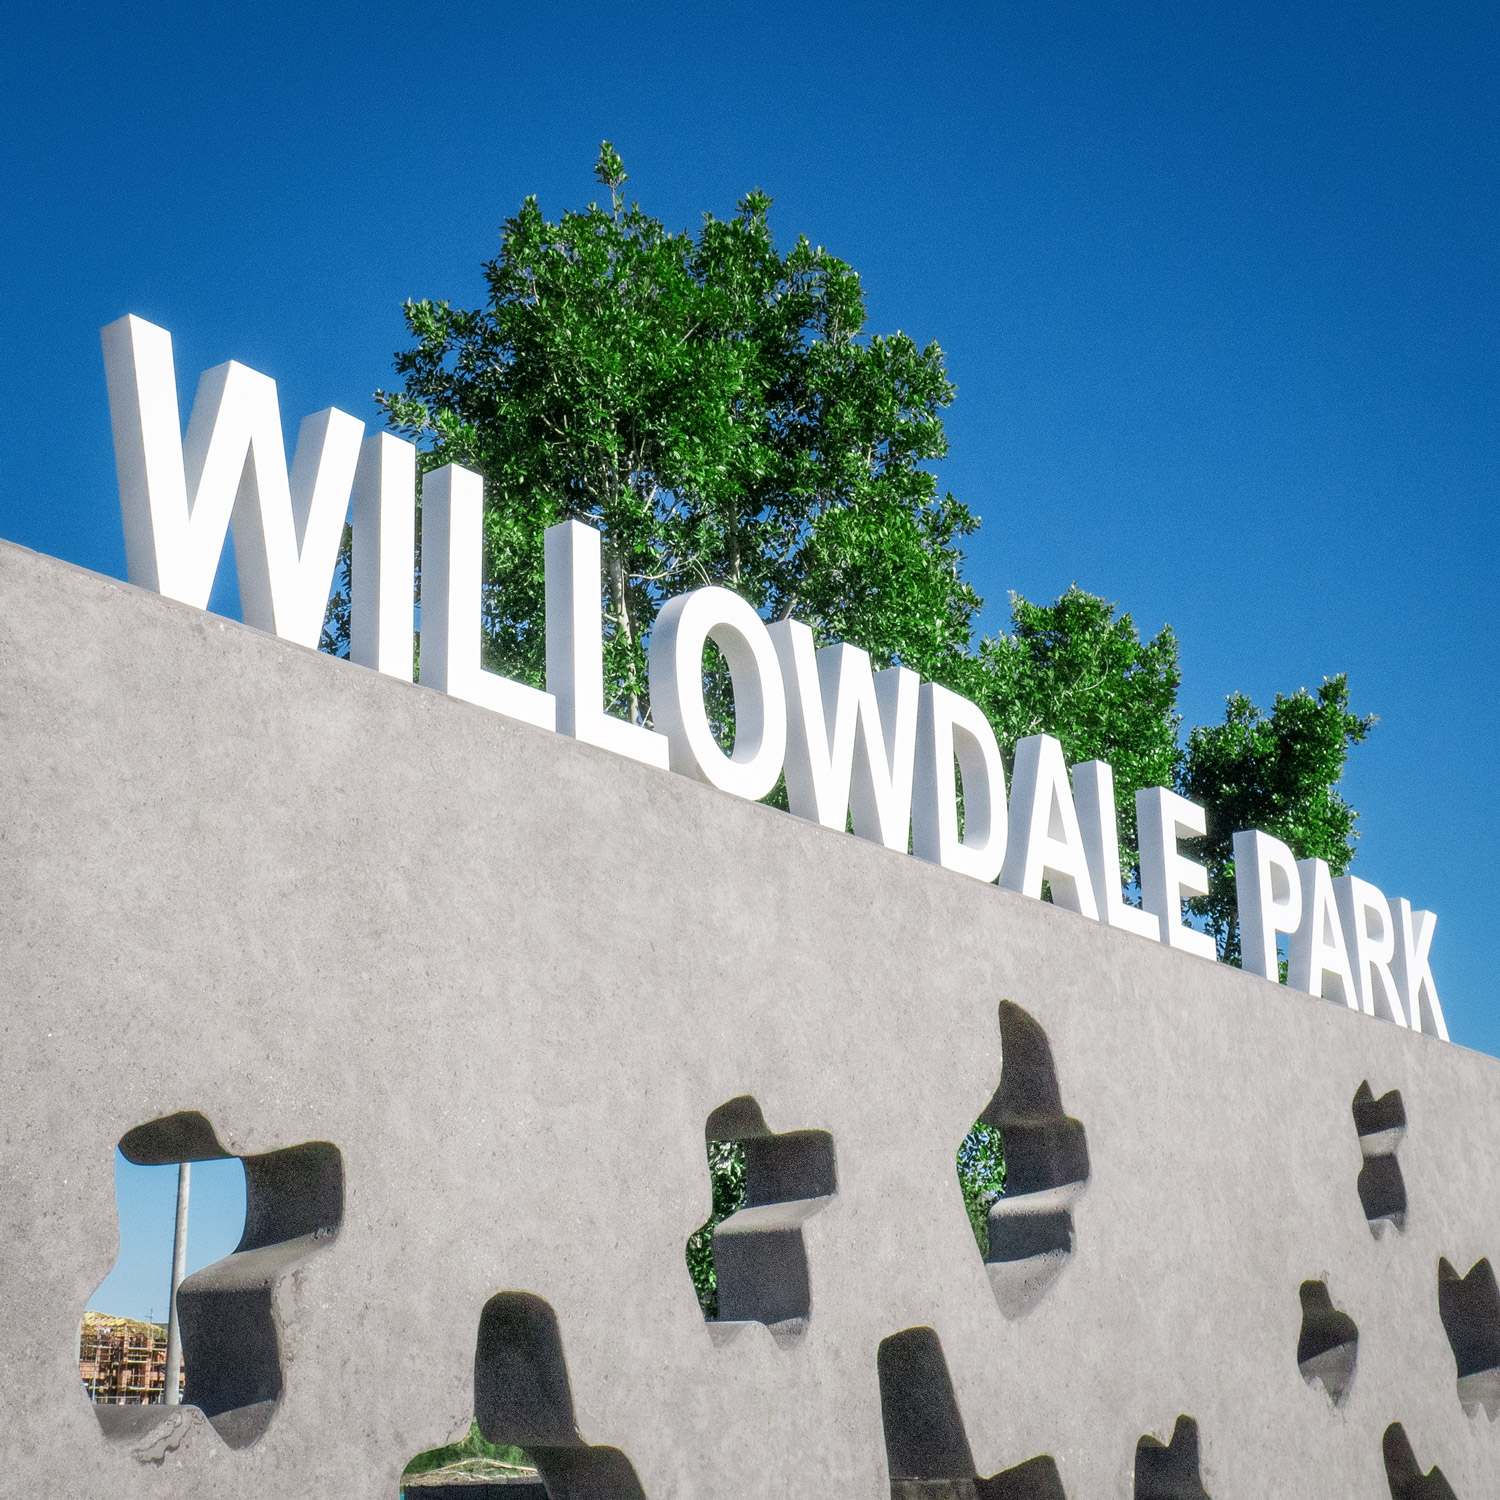 Willowdale_HDR2.jpg